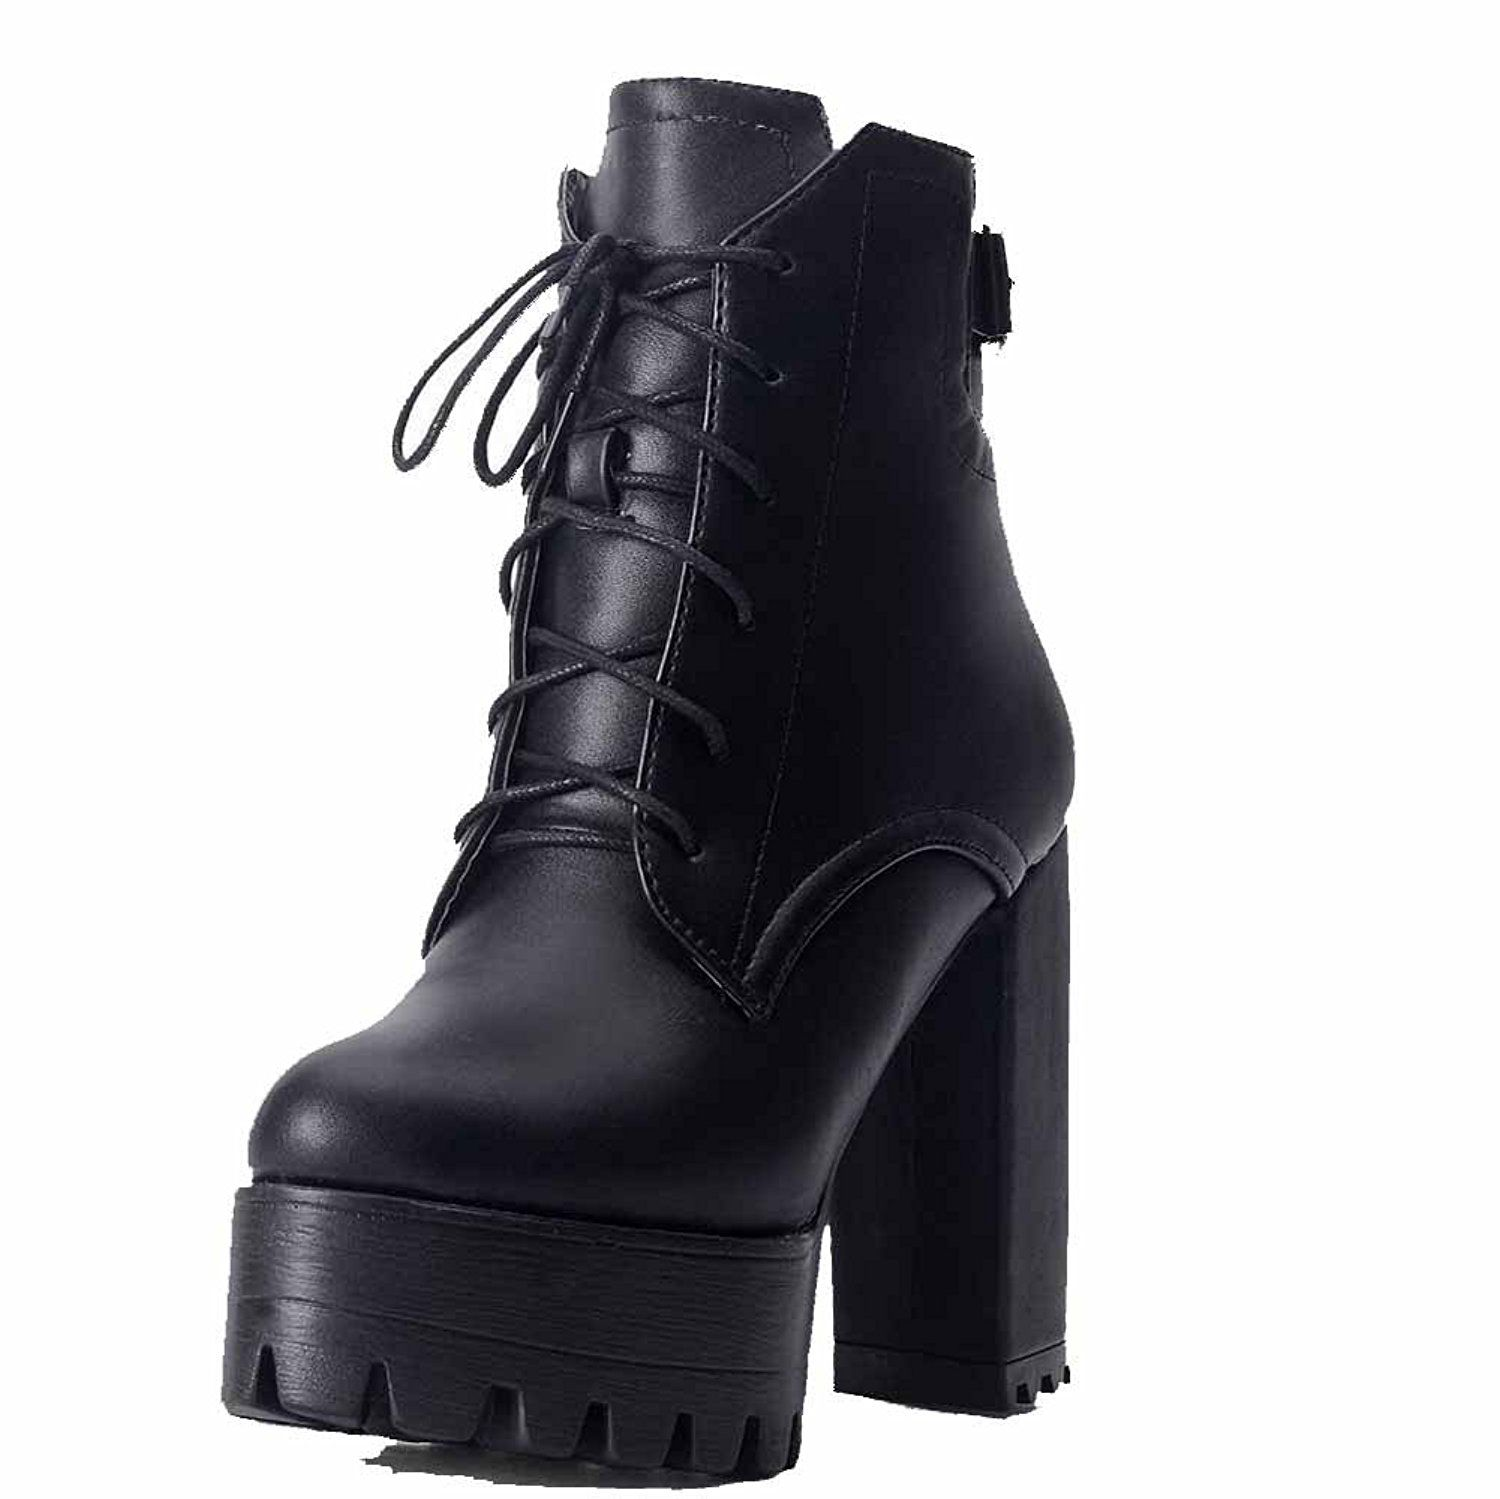 Women's Solid PU Low-Heels Buckle Round Closed Toe Boots